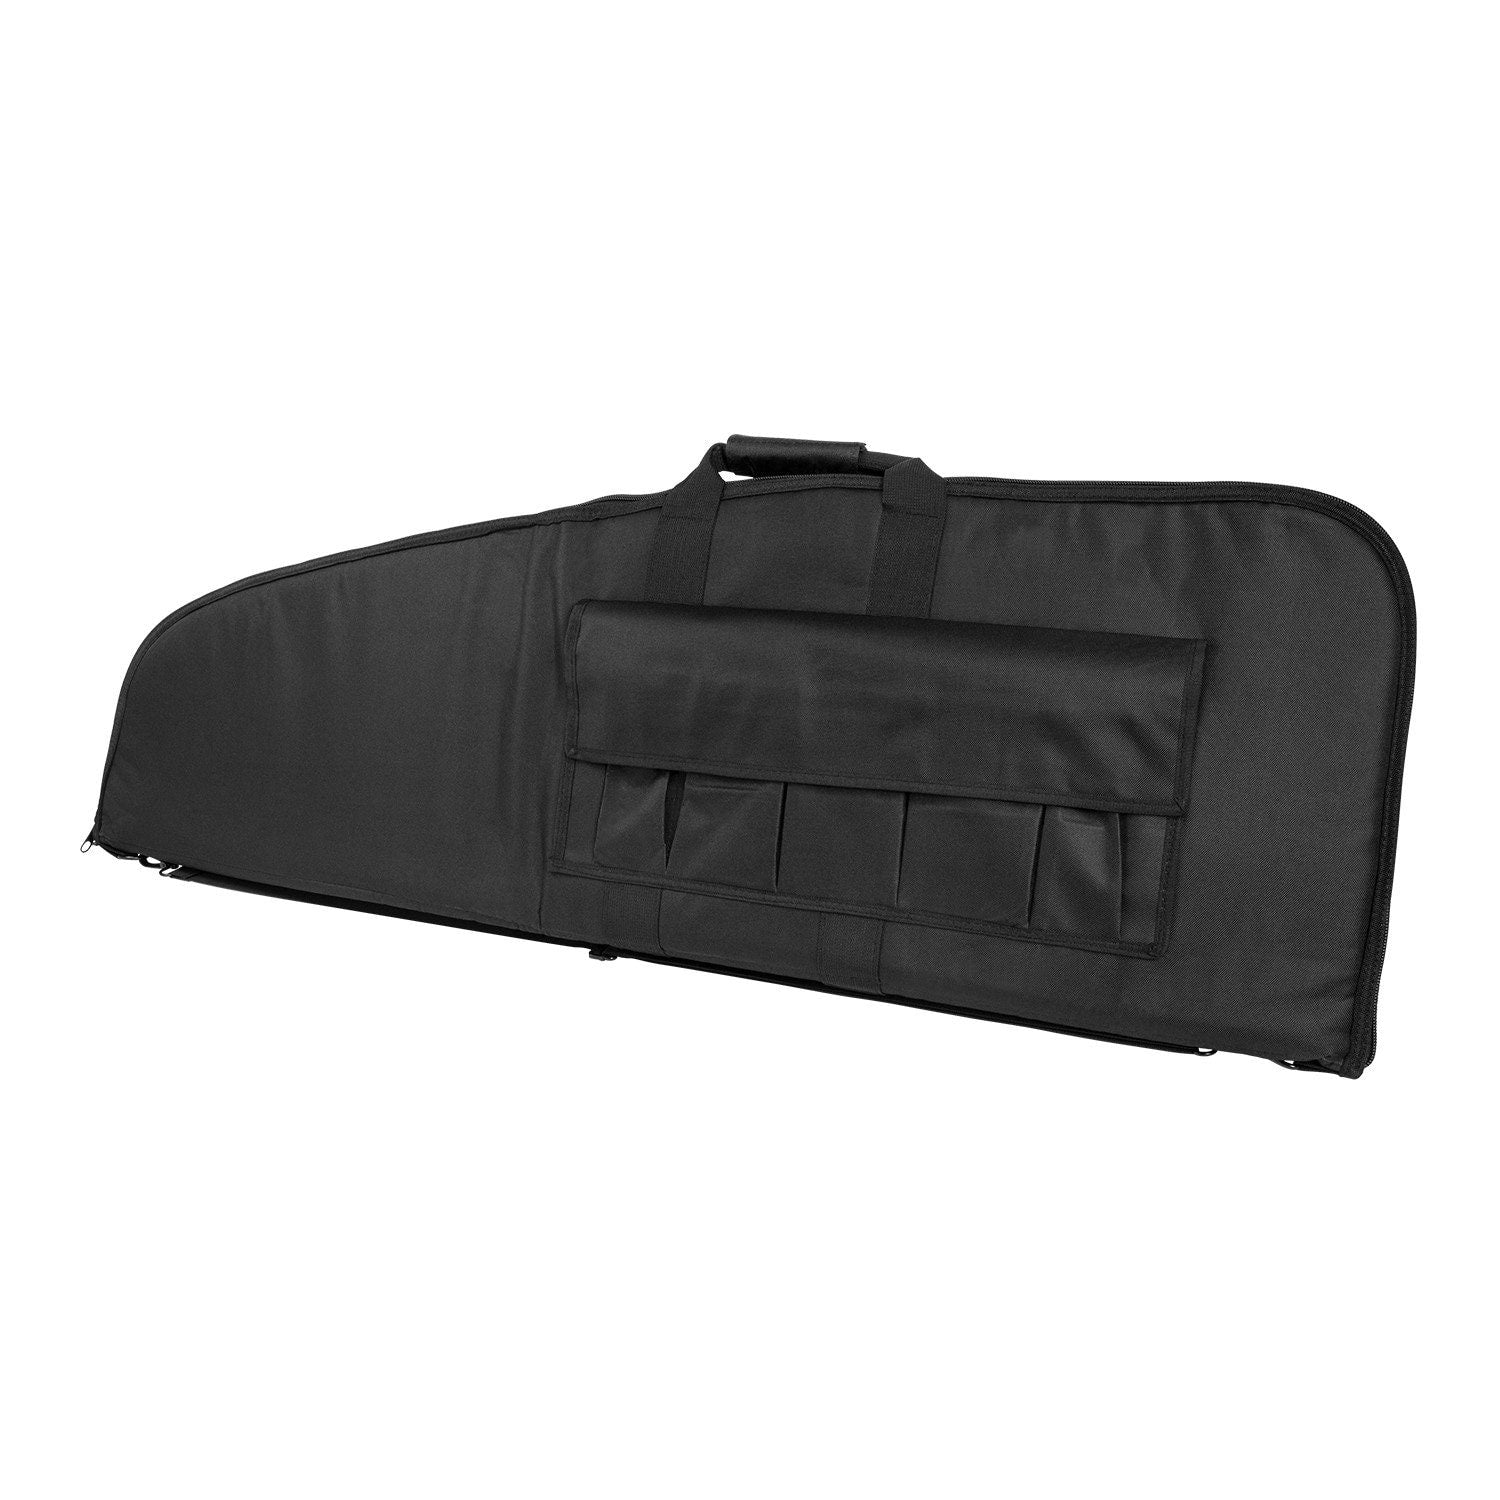 Scope-Ready Rifle Case (52 Inch X 16 Inch) - Black - Rifle/carbine Cases - Vism - Colonel Mustard